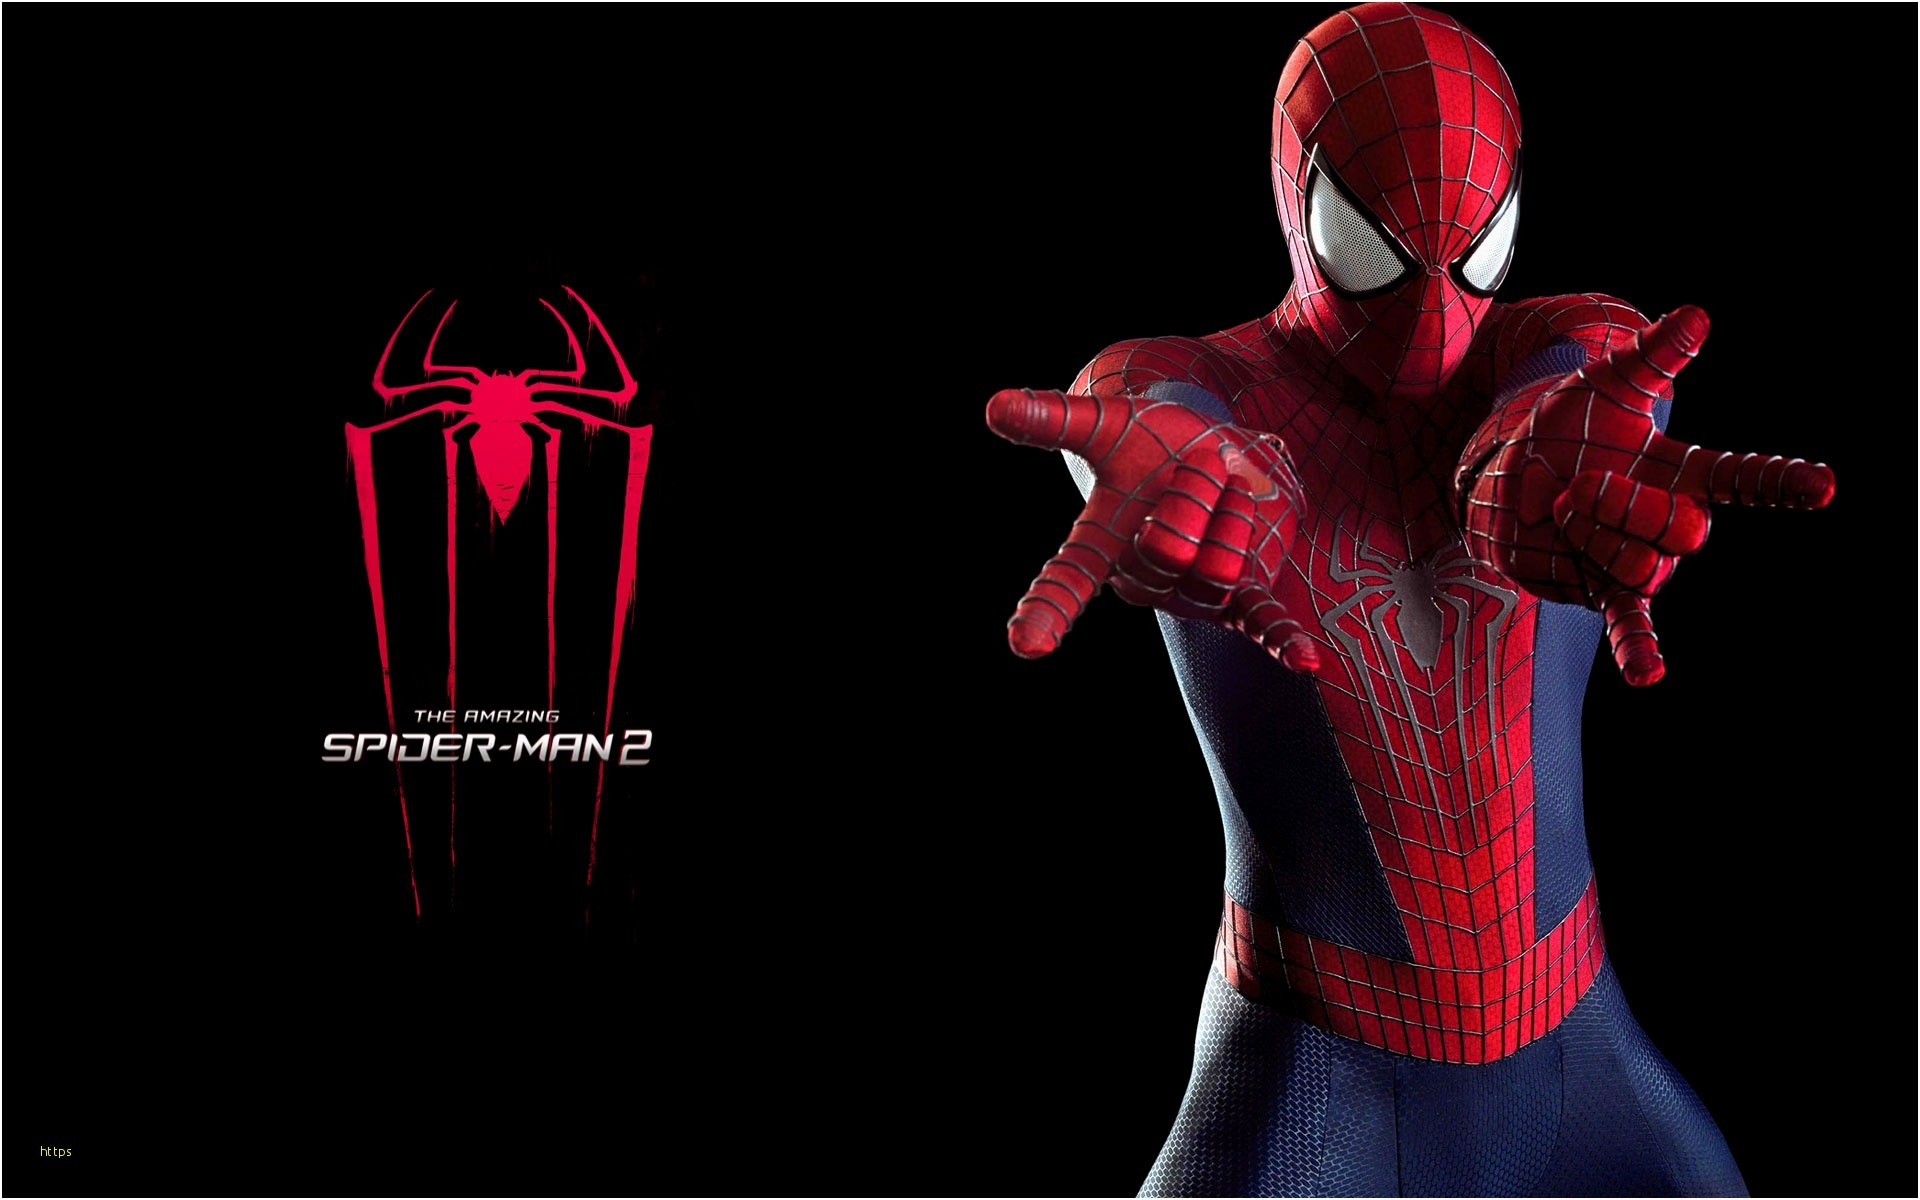 1920x1200 Spiderman Wallpaper Luxury the Amazing Spider Man 2 Wallpapers [hd] &  ...